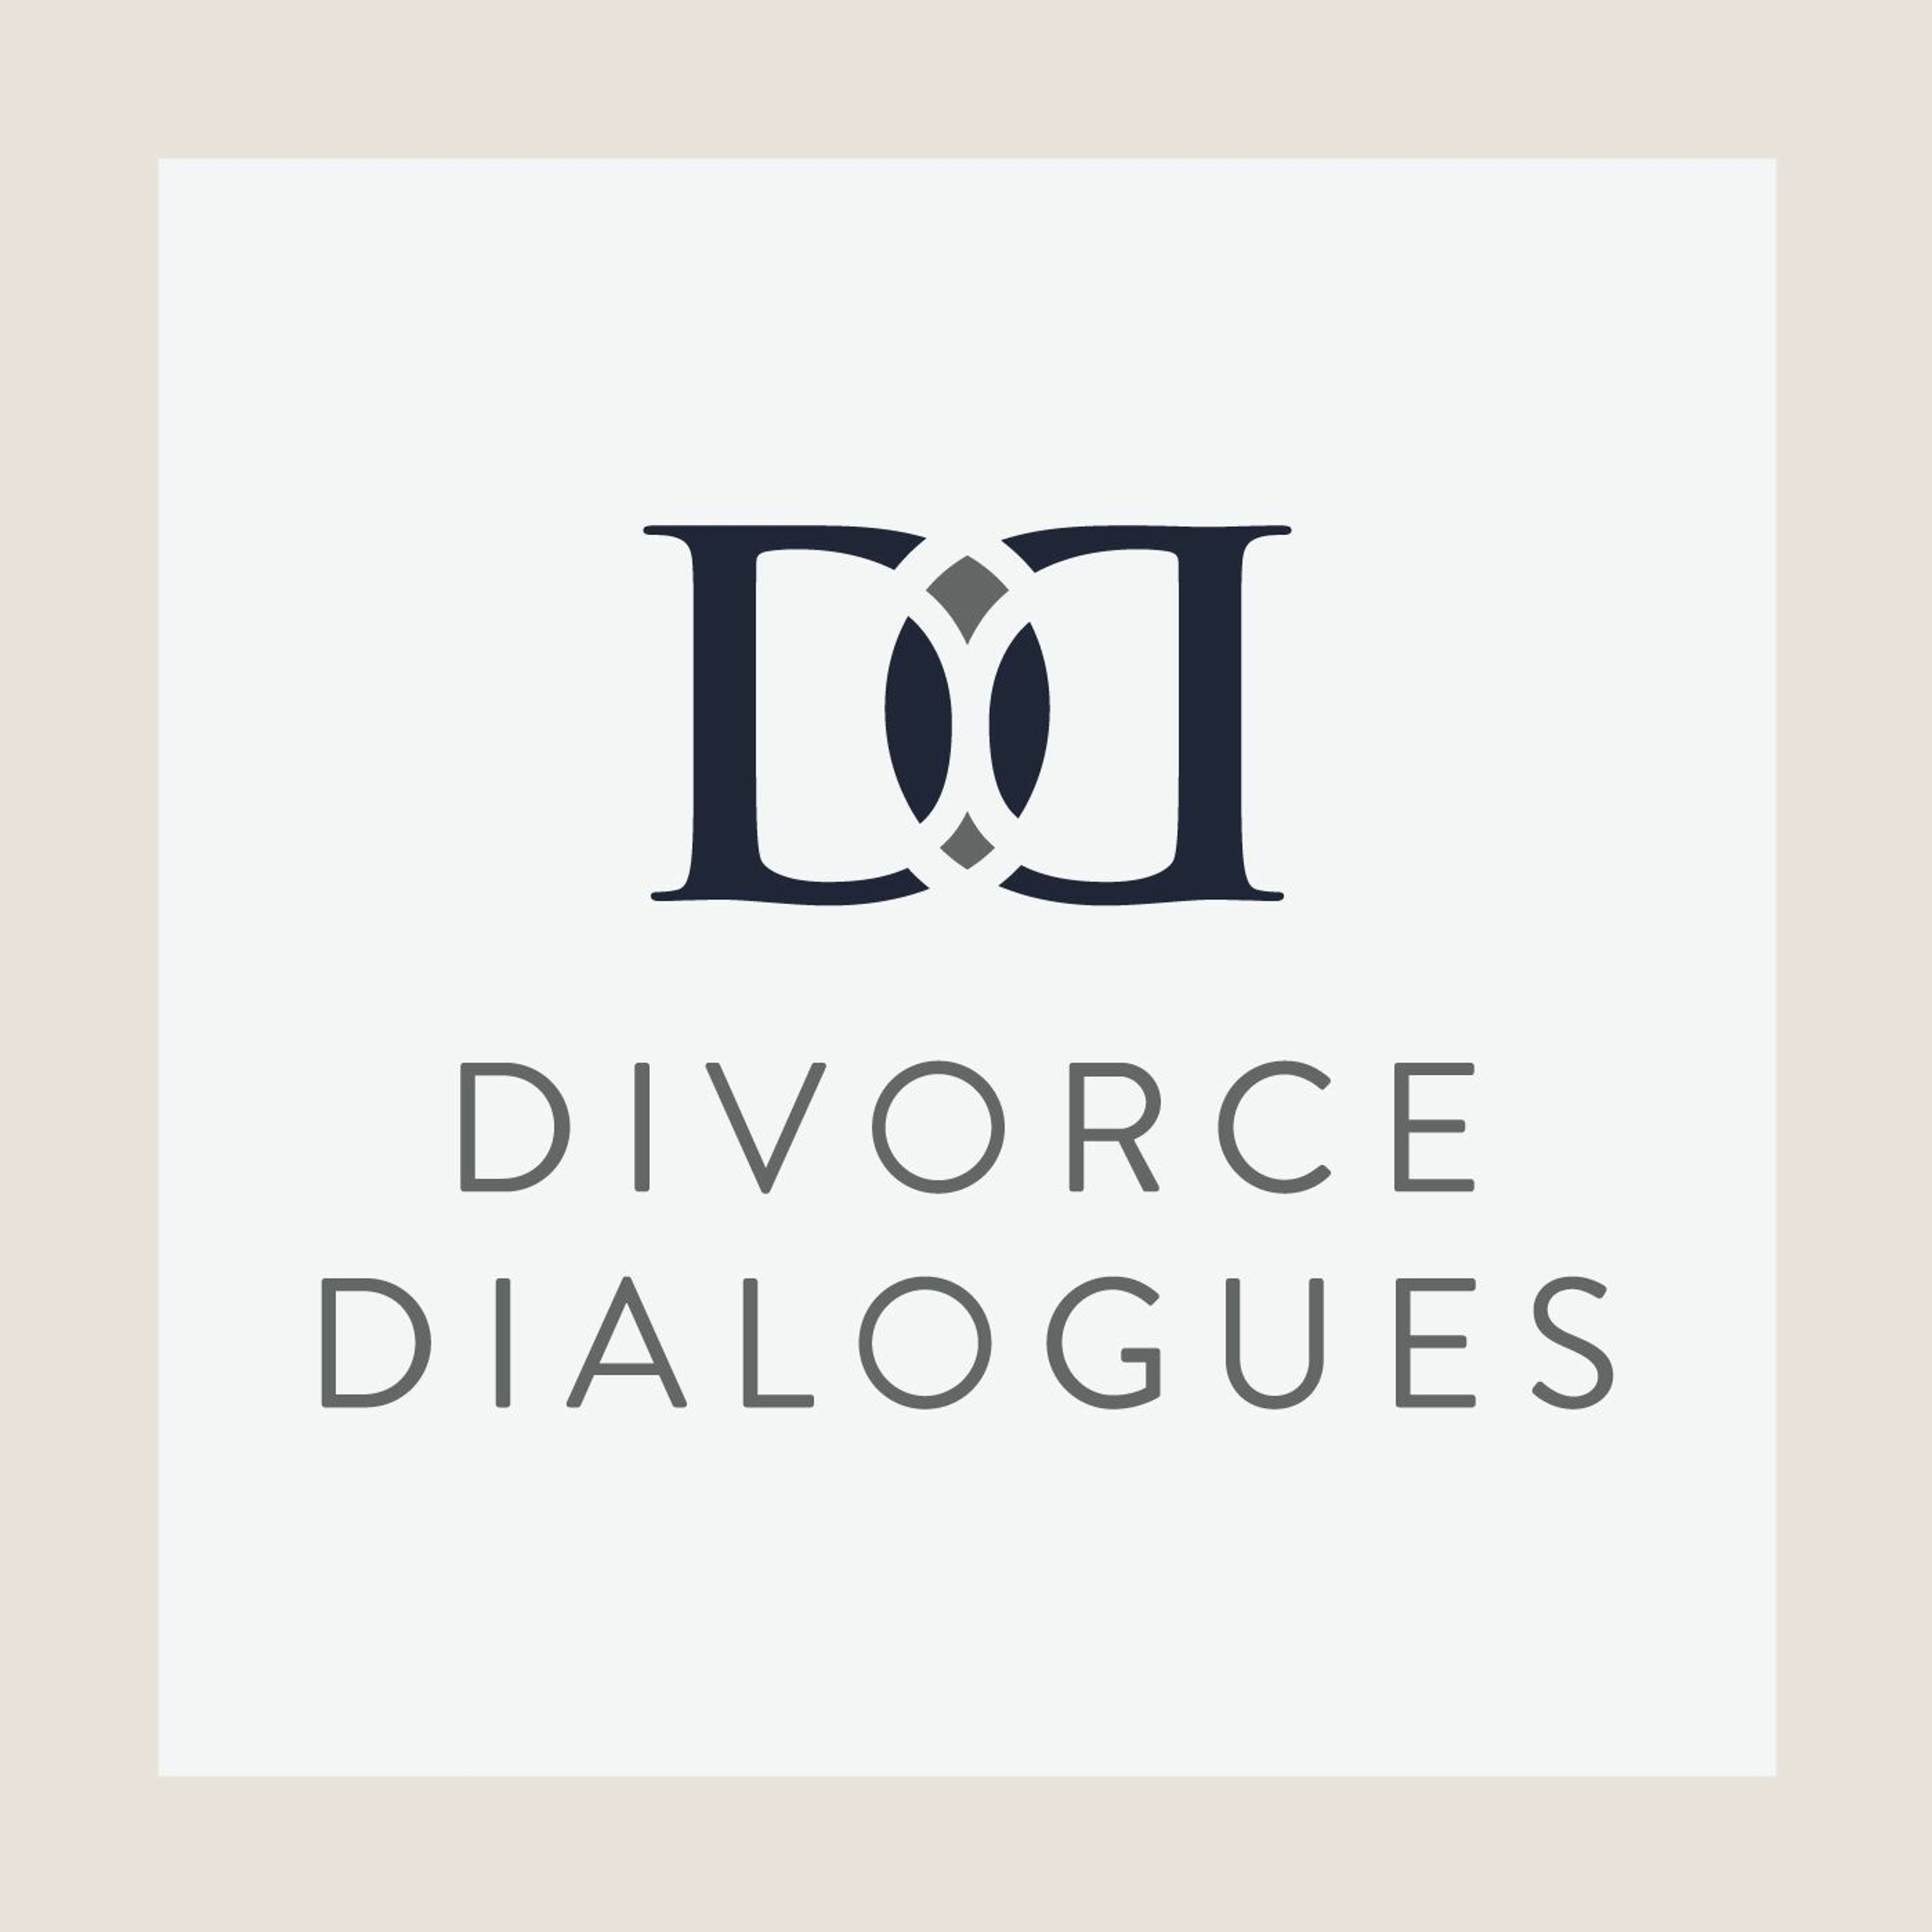 Divorce Dialogues - Advice from Adult Children of Divorce